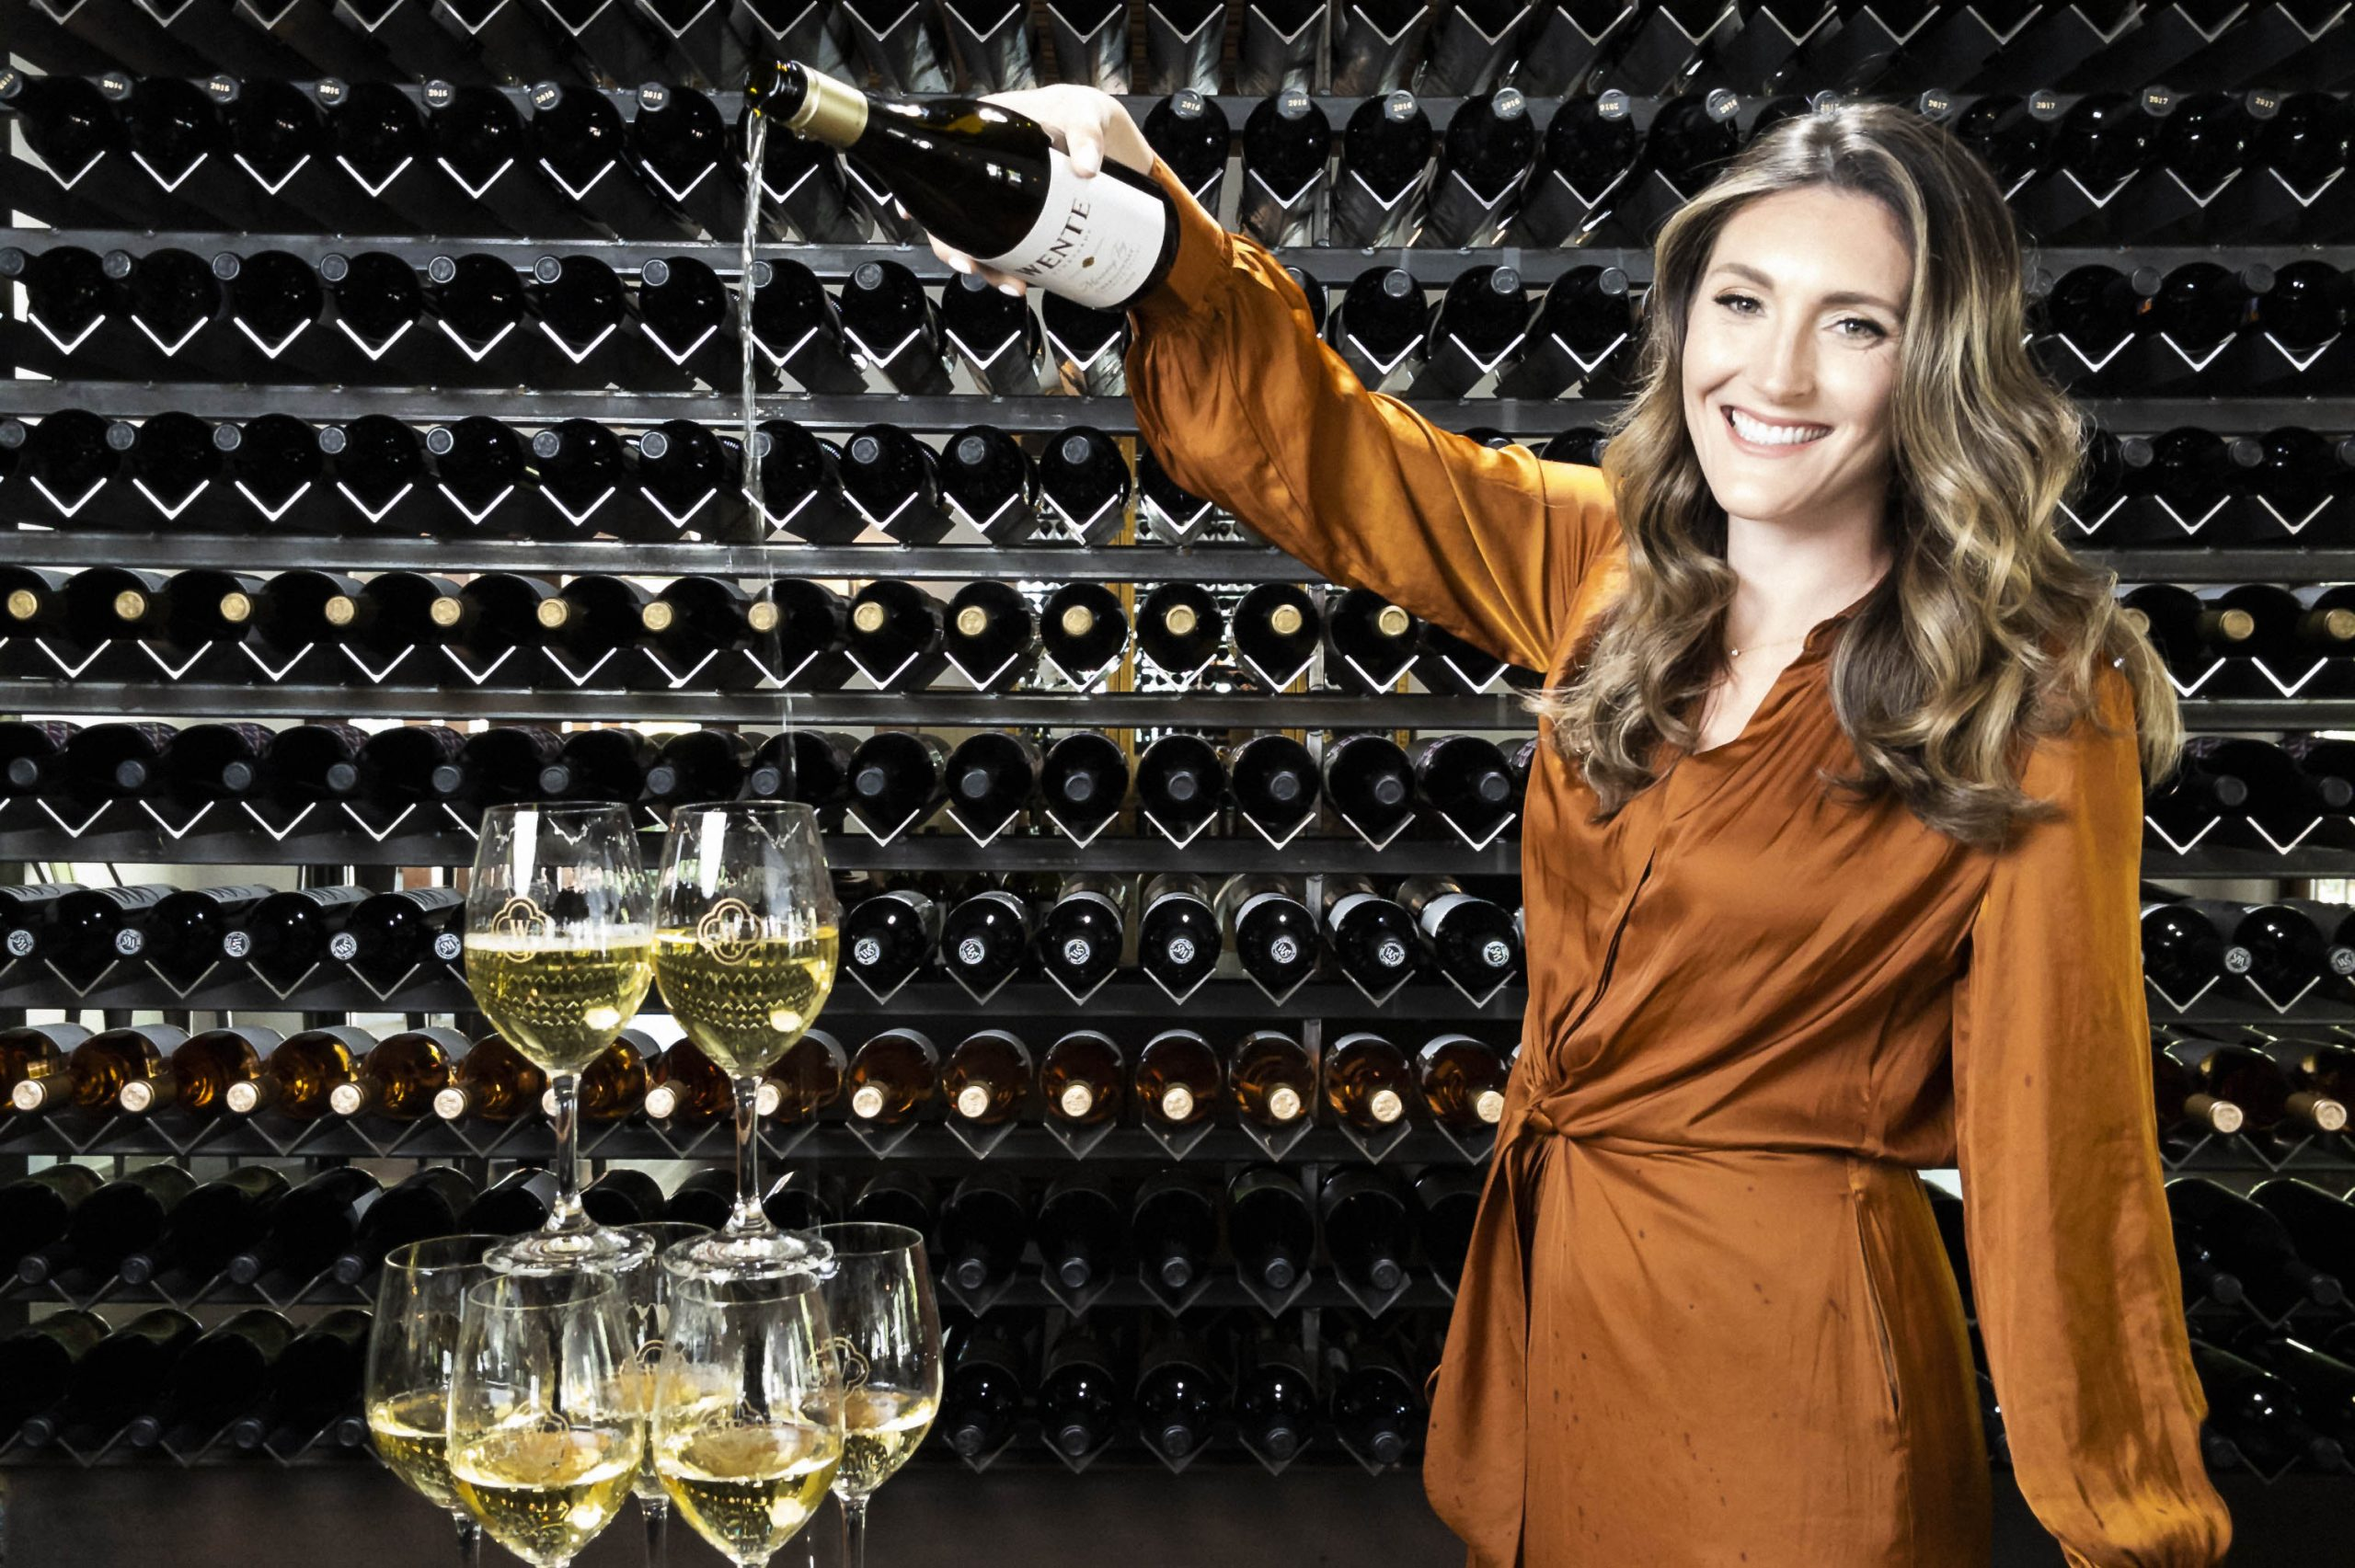 Aly Wente, standing, pouring white wine into pyramid of wine glasses